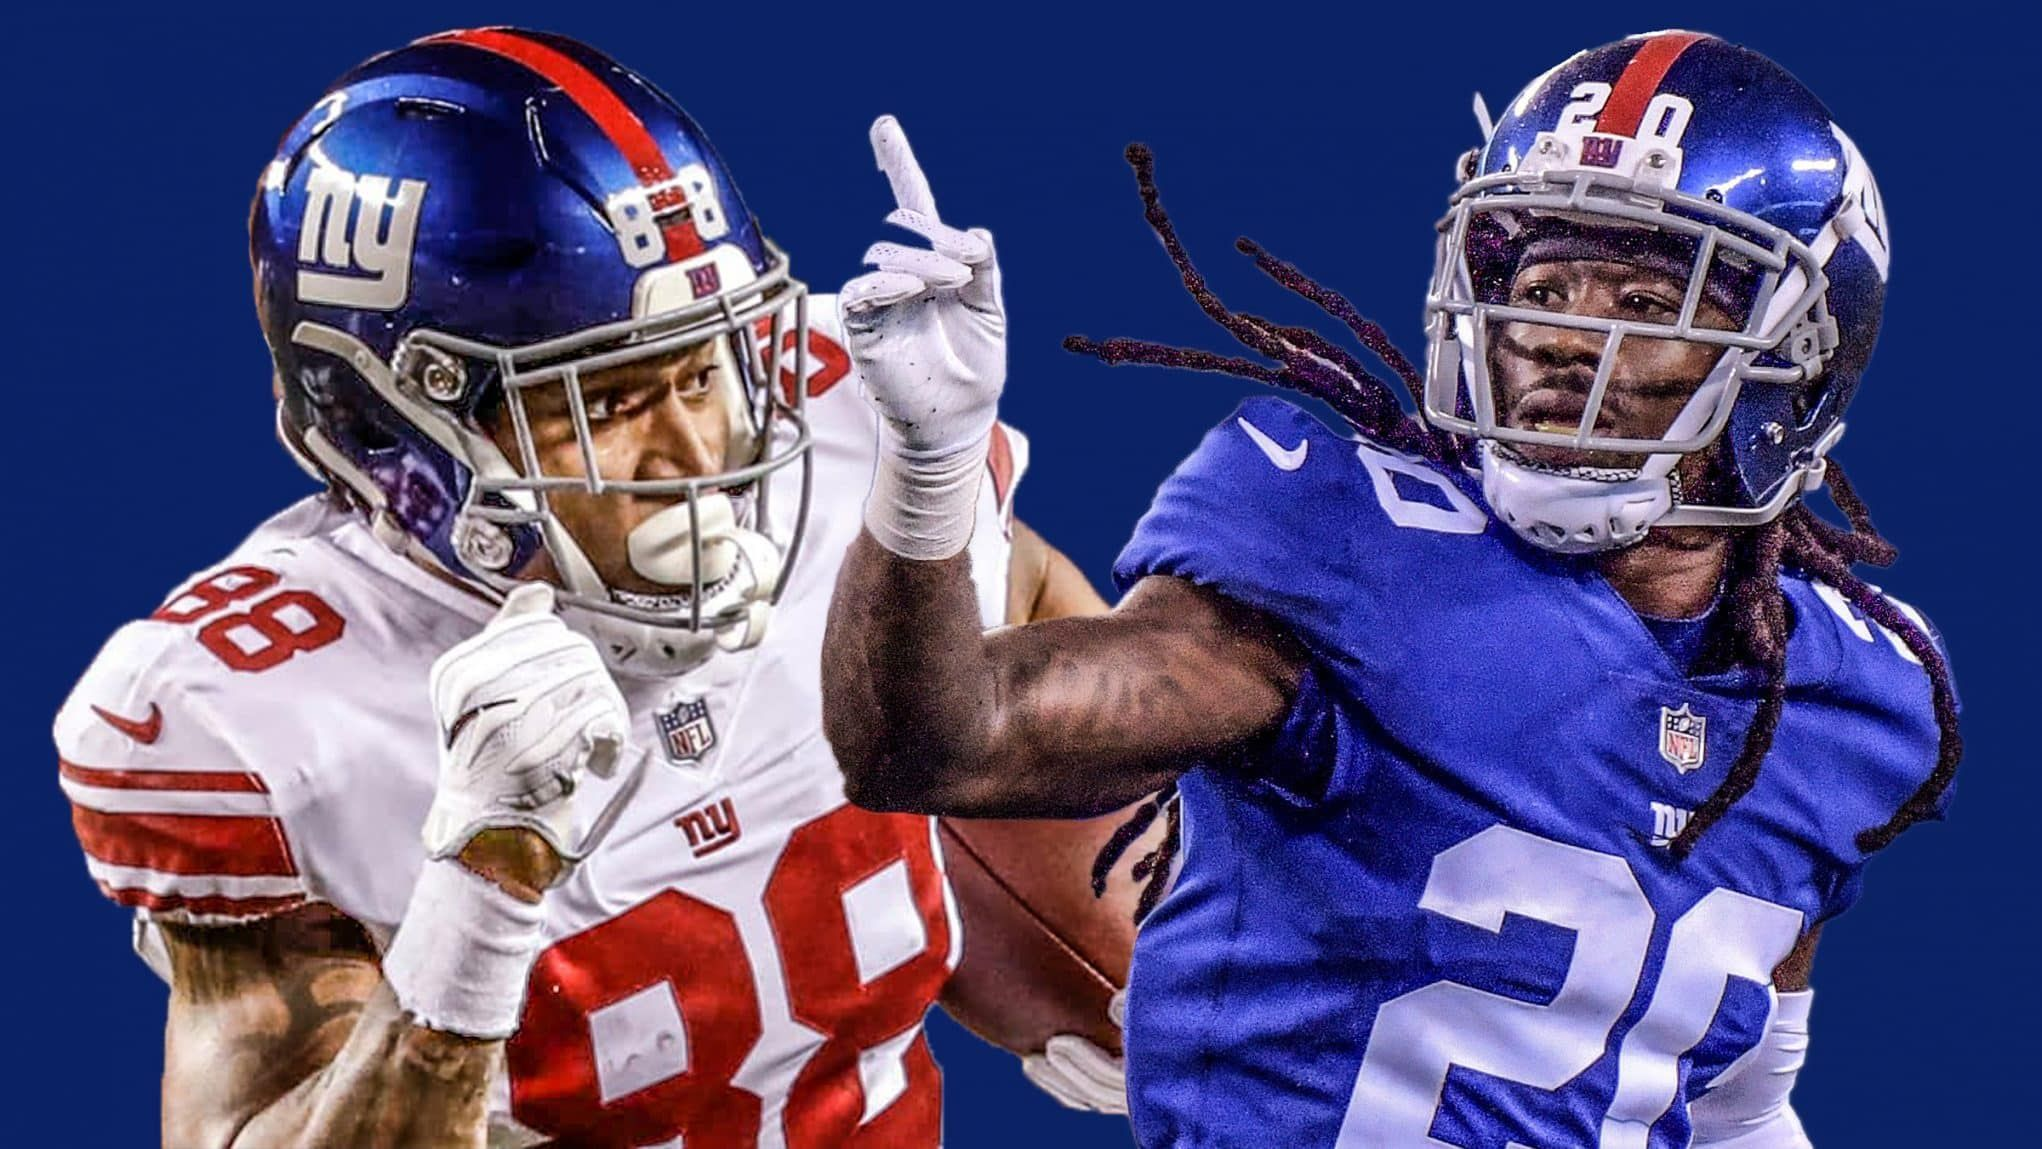 New York Giants Https Giantsfootball Net Game Live Stream Free Online How To Watch Giants Football New York Giants New York Giants Football Giants Football